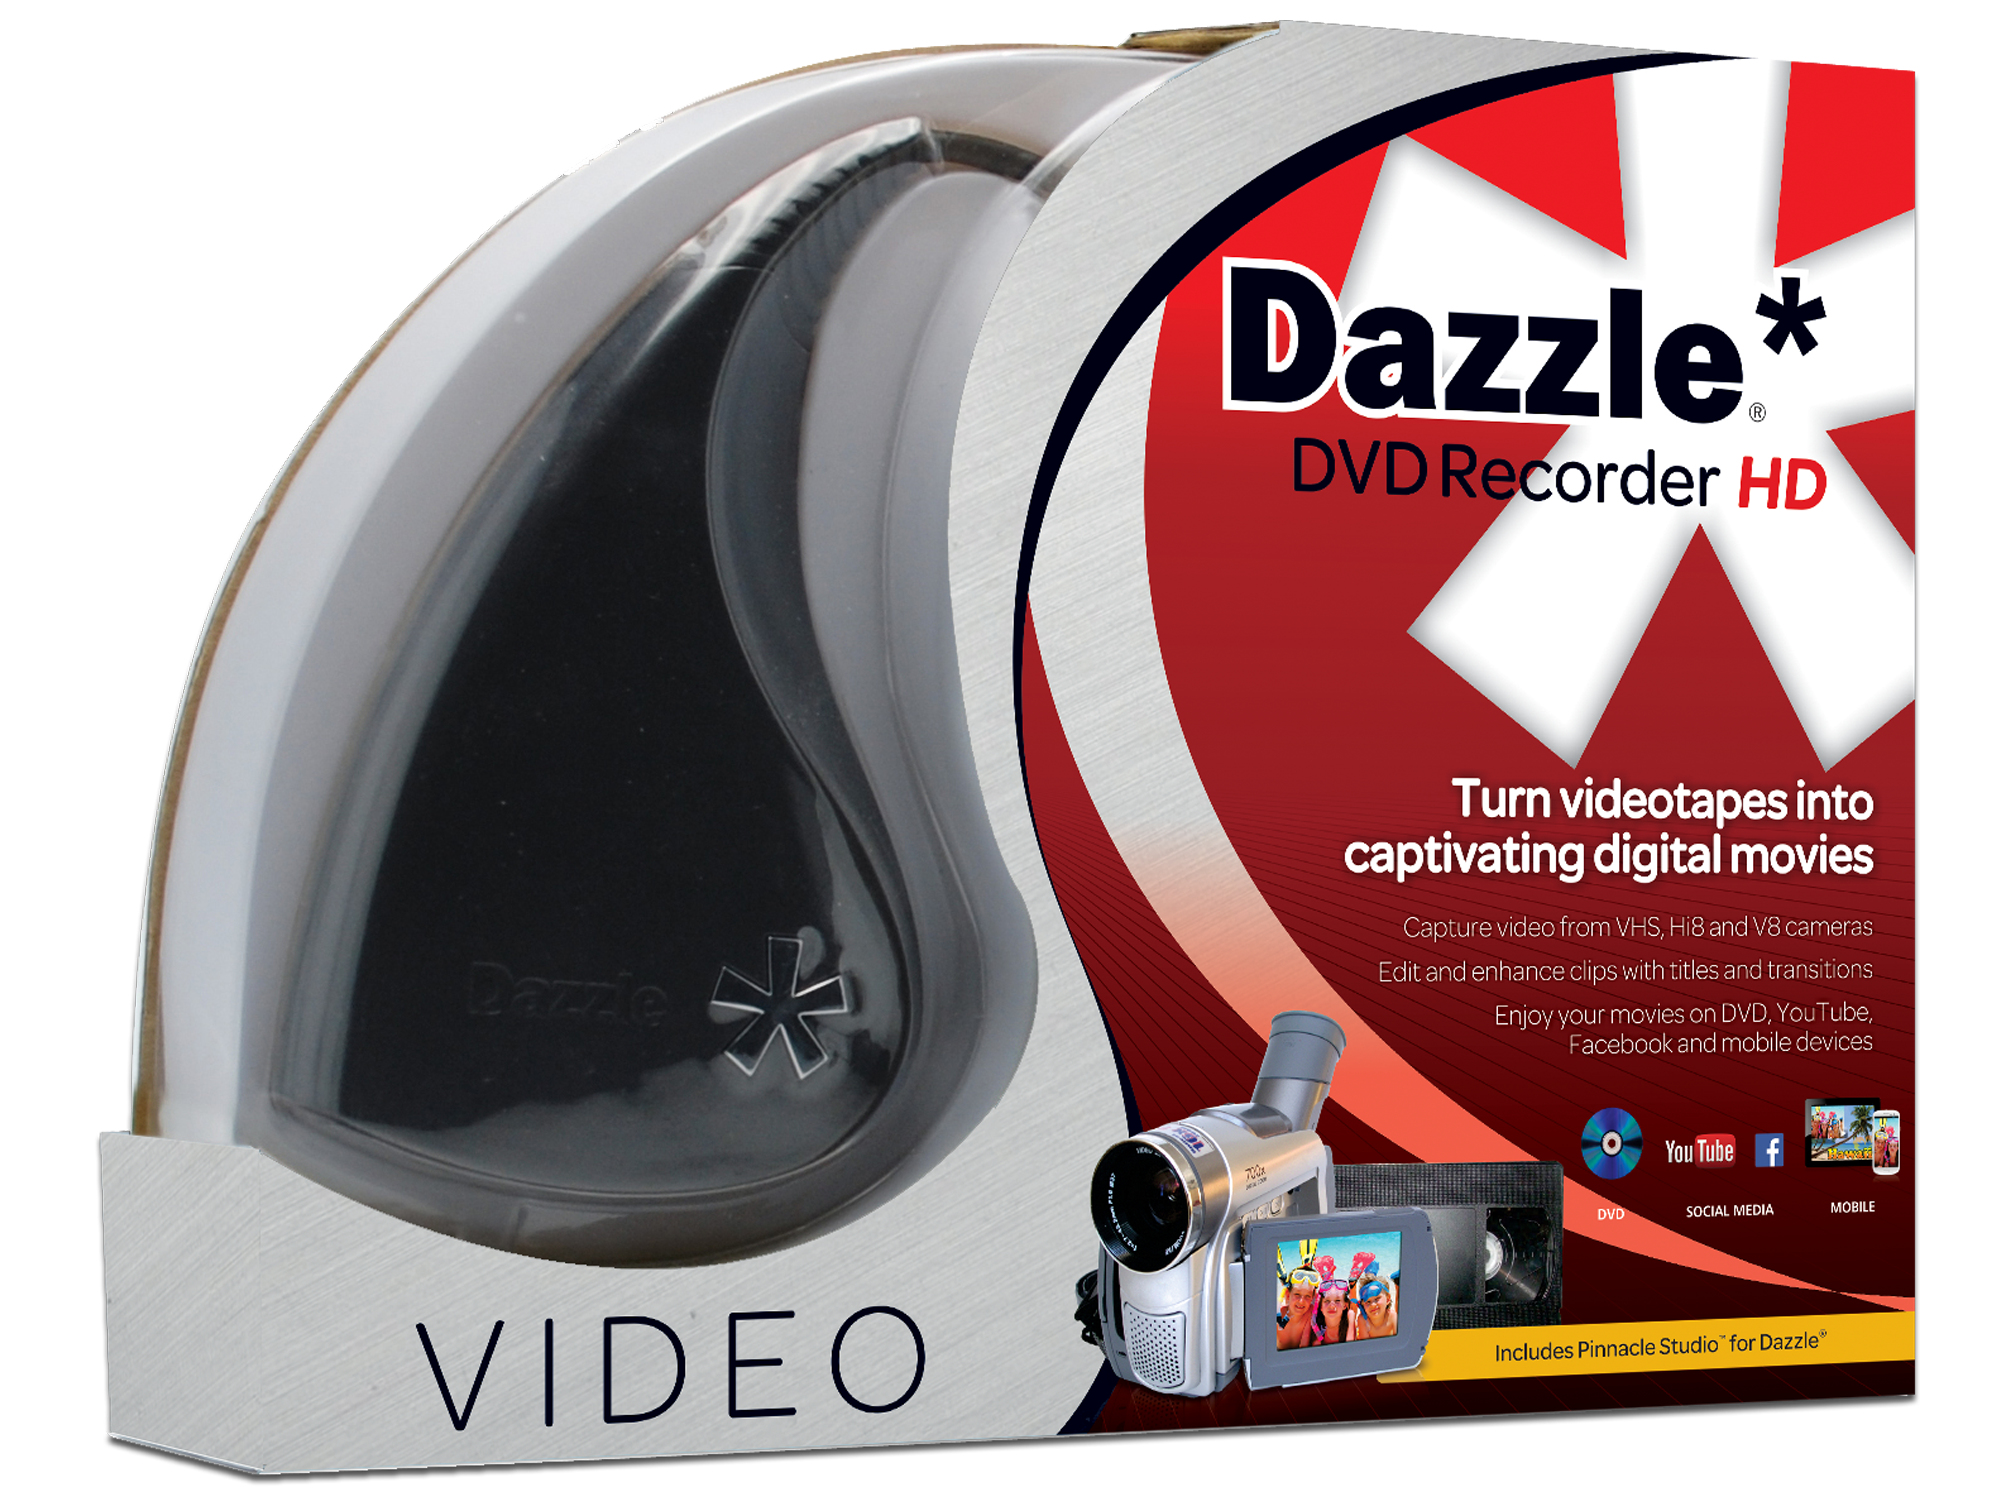 COREL DDVRECHDML DAZZLE DVD RECORDER HD, ML